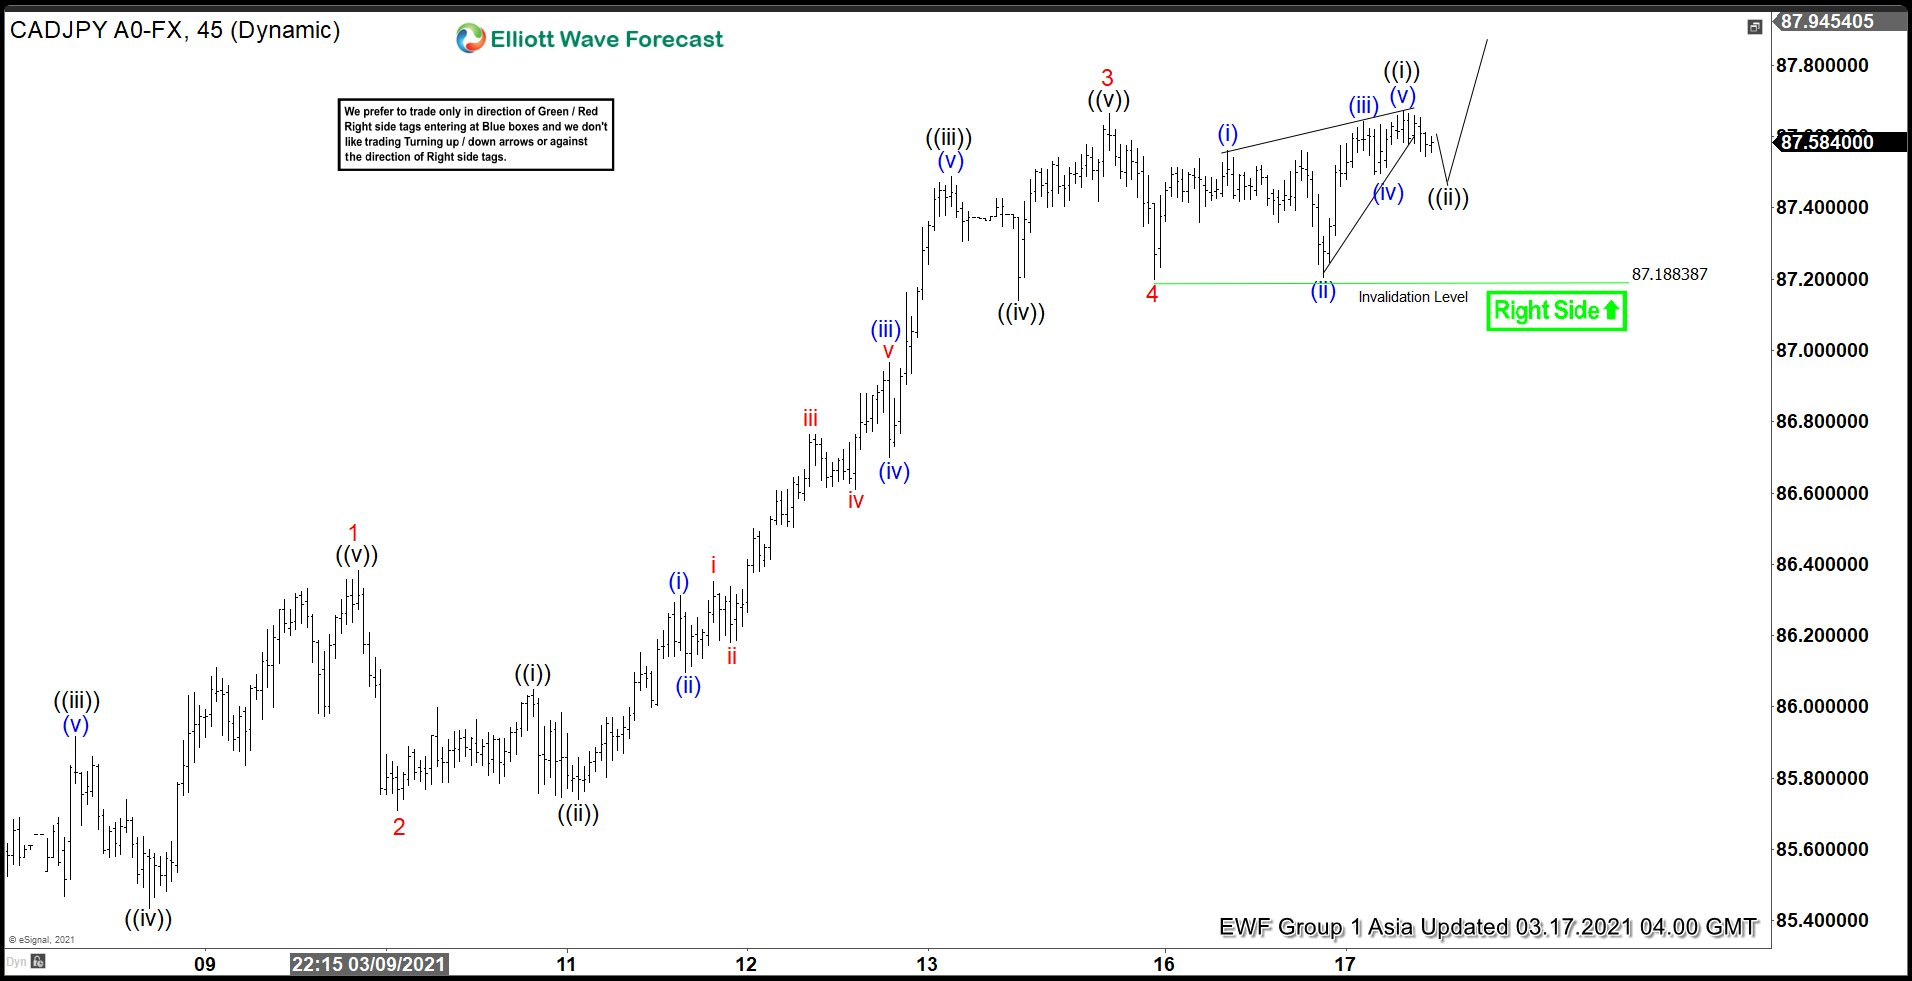 Elliott Wave View: CADJPY Impulse Rally In Progress